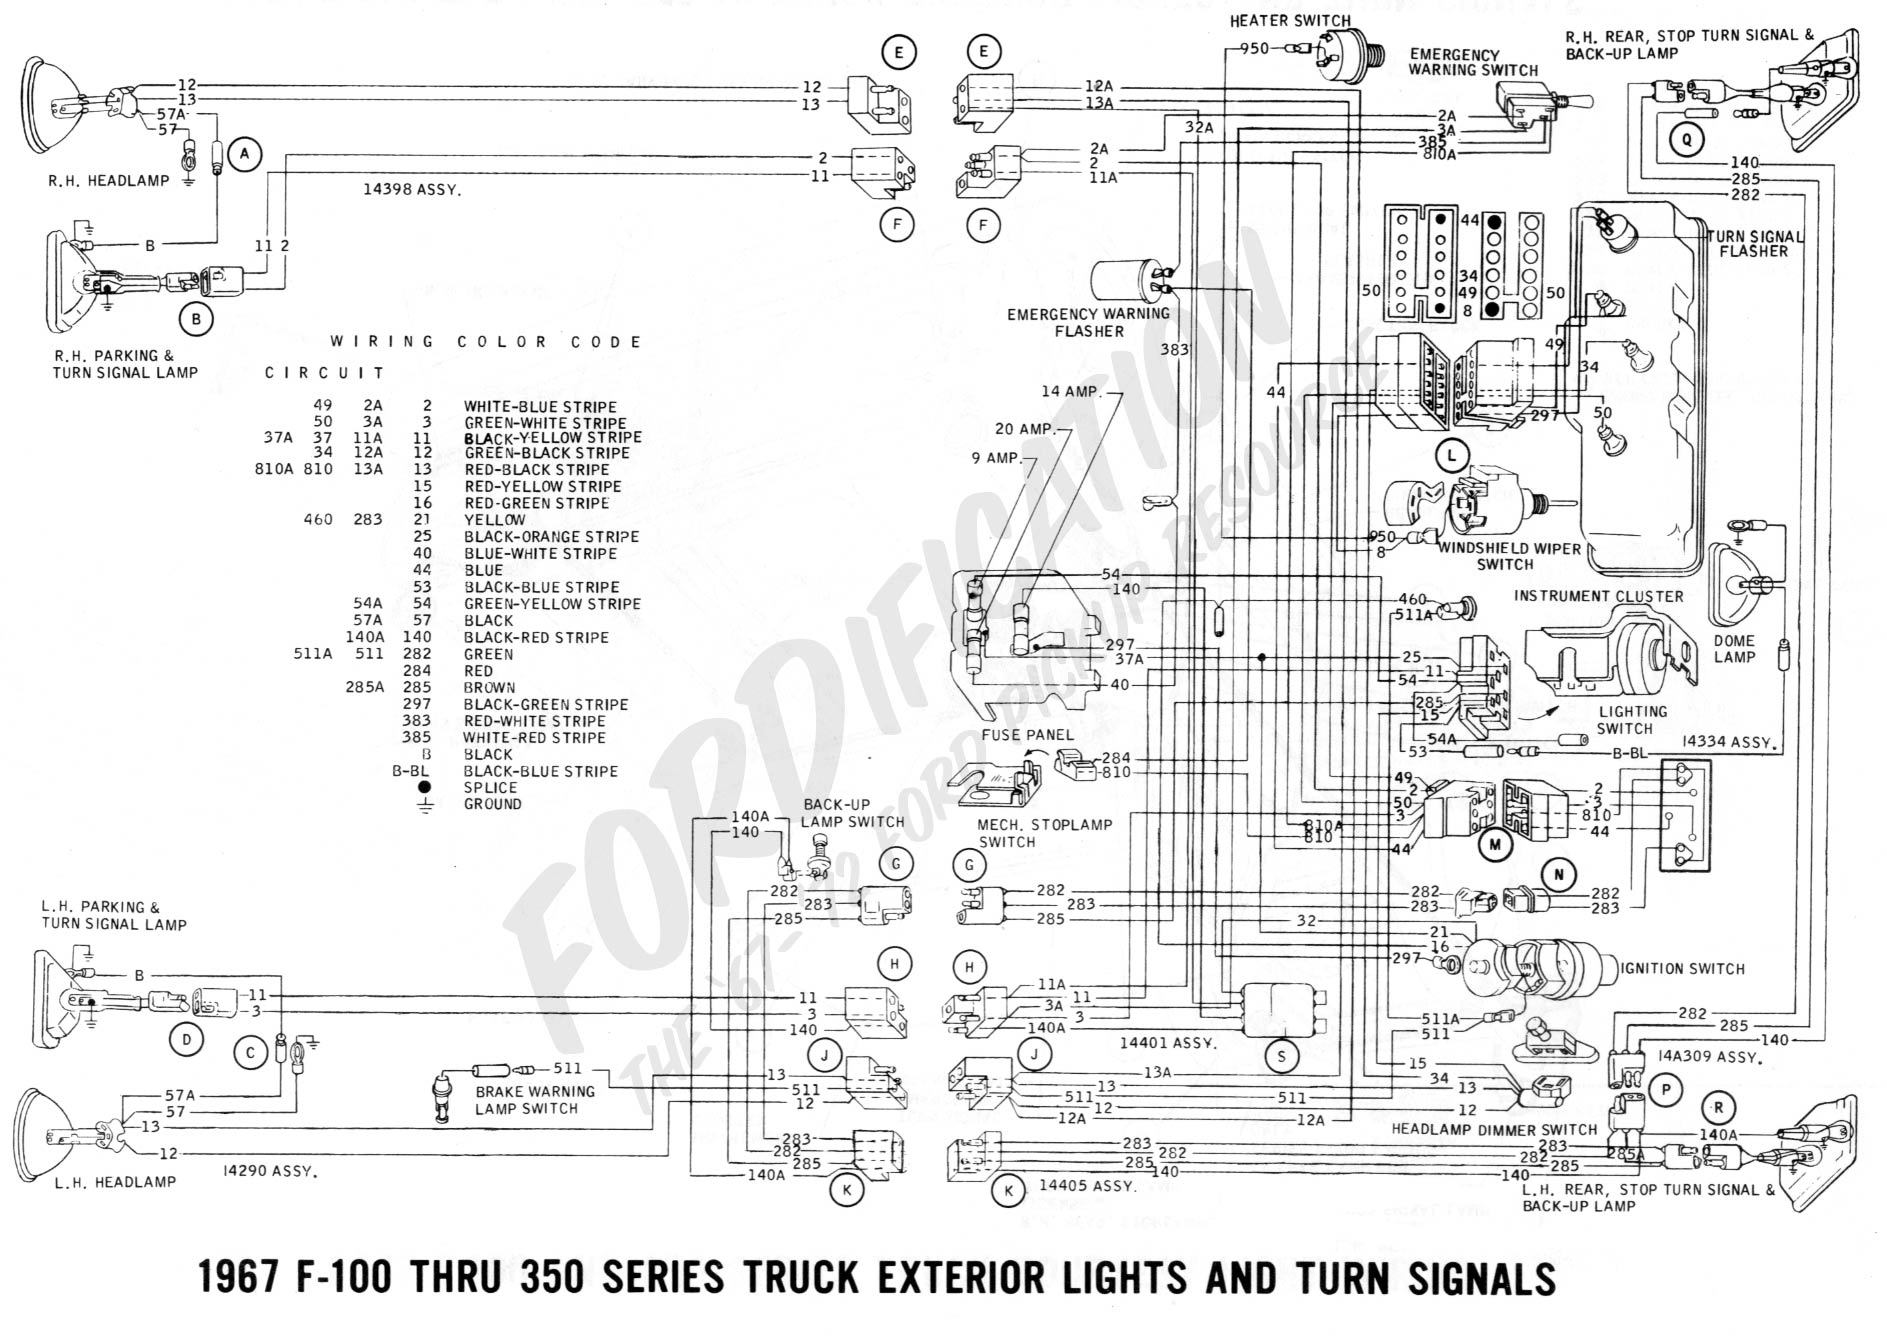 80 1967_exterior_lights_and_turn_signals_page_2_1db6c529c4c9567560e56d6320f993290ba5b803 1967 mustang wiring diagram efcaviation com 67 mustang dash wiring diagram at virtualis.co